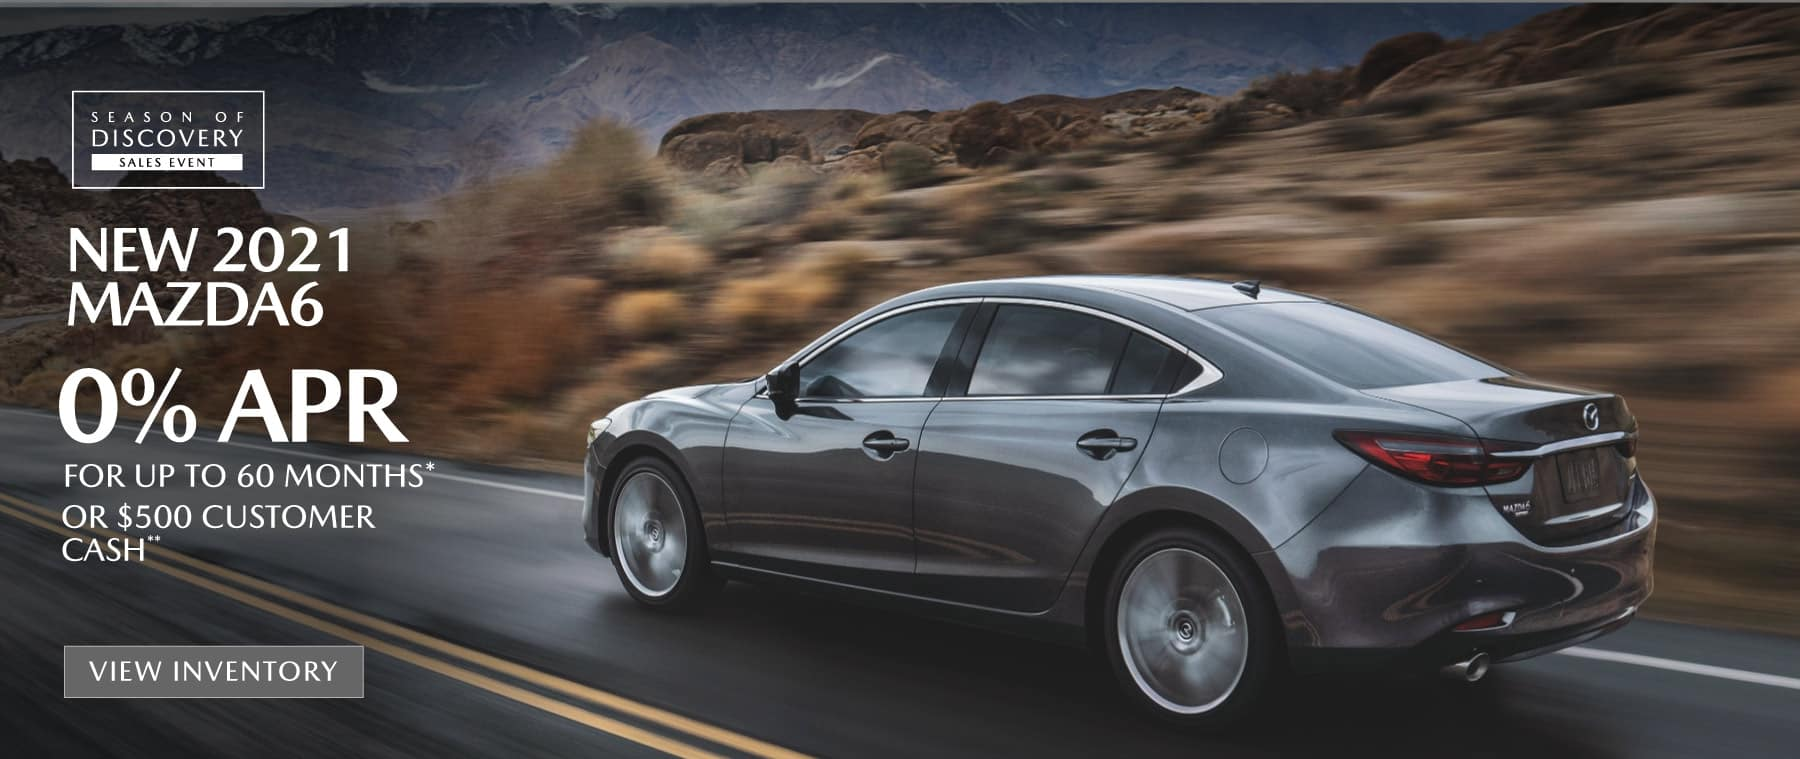 New 2021 MAZDA6 – 0% APR for up to 60 months* OR $500 Customer Cash**